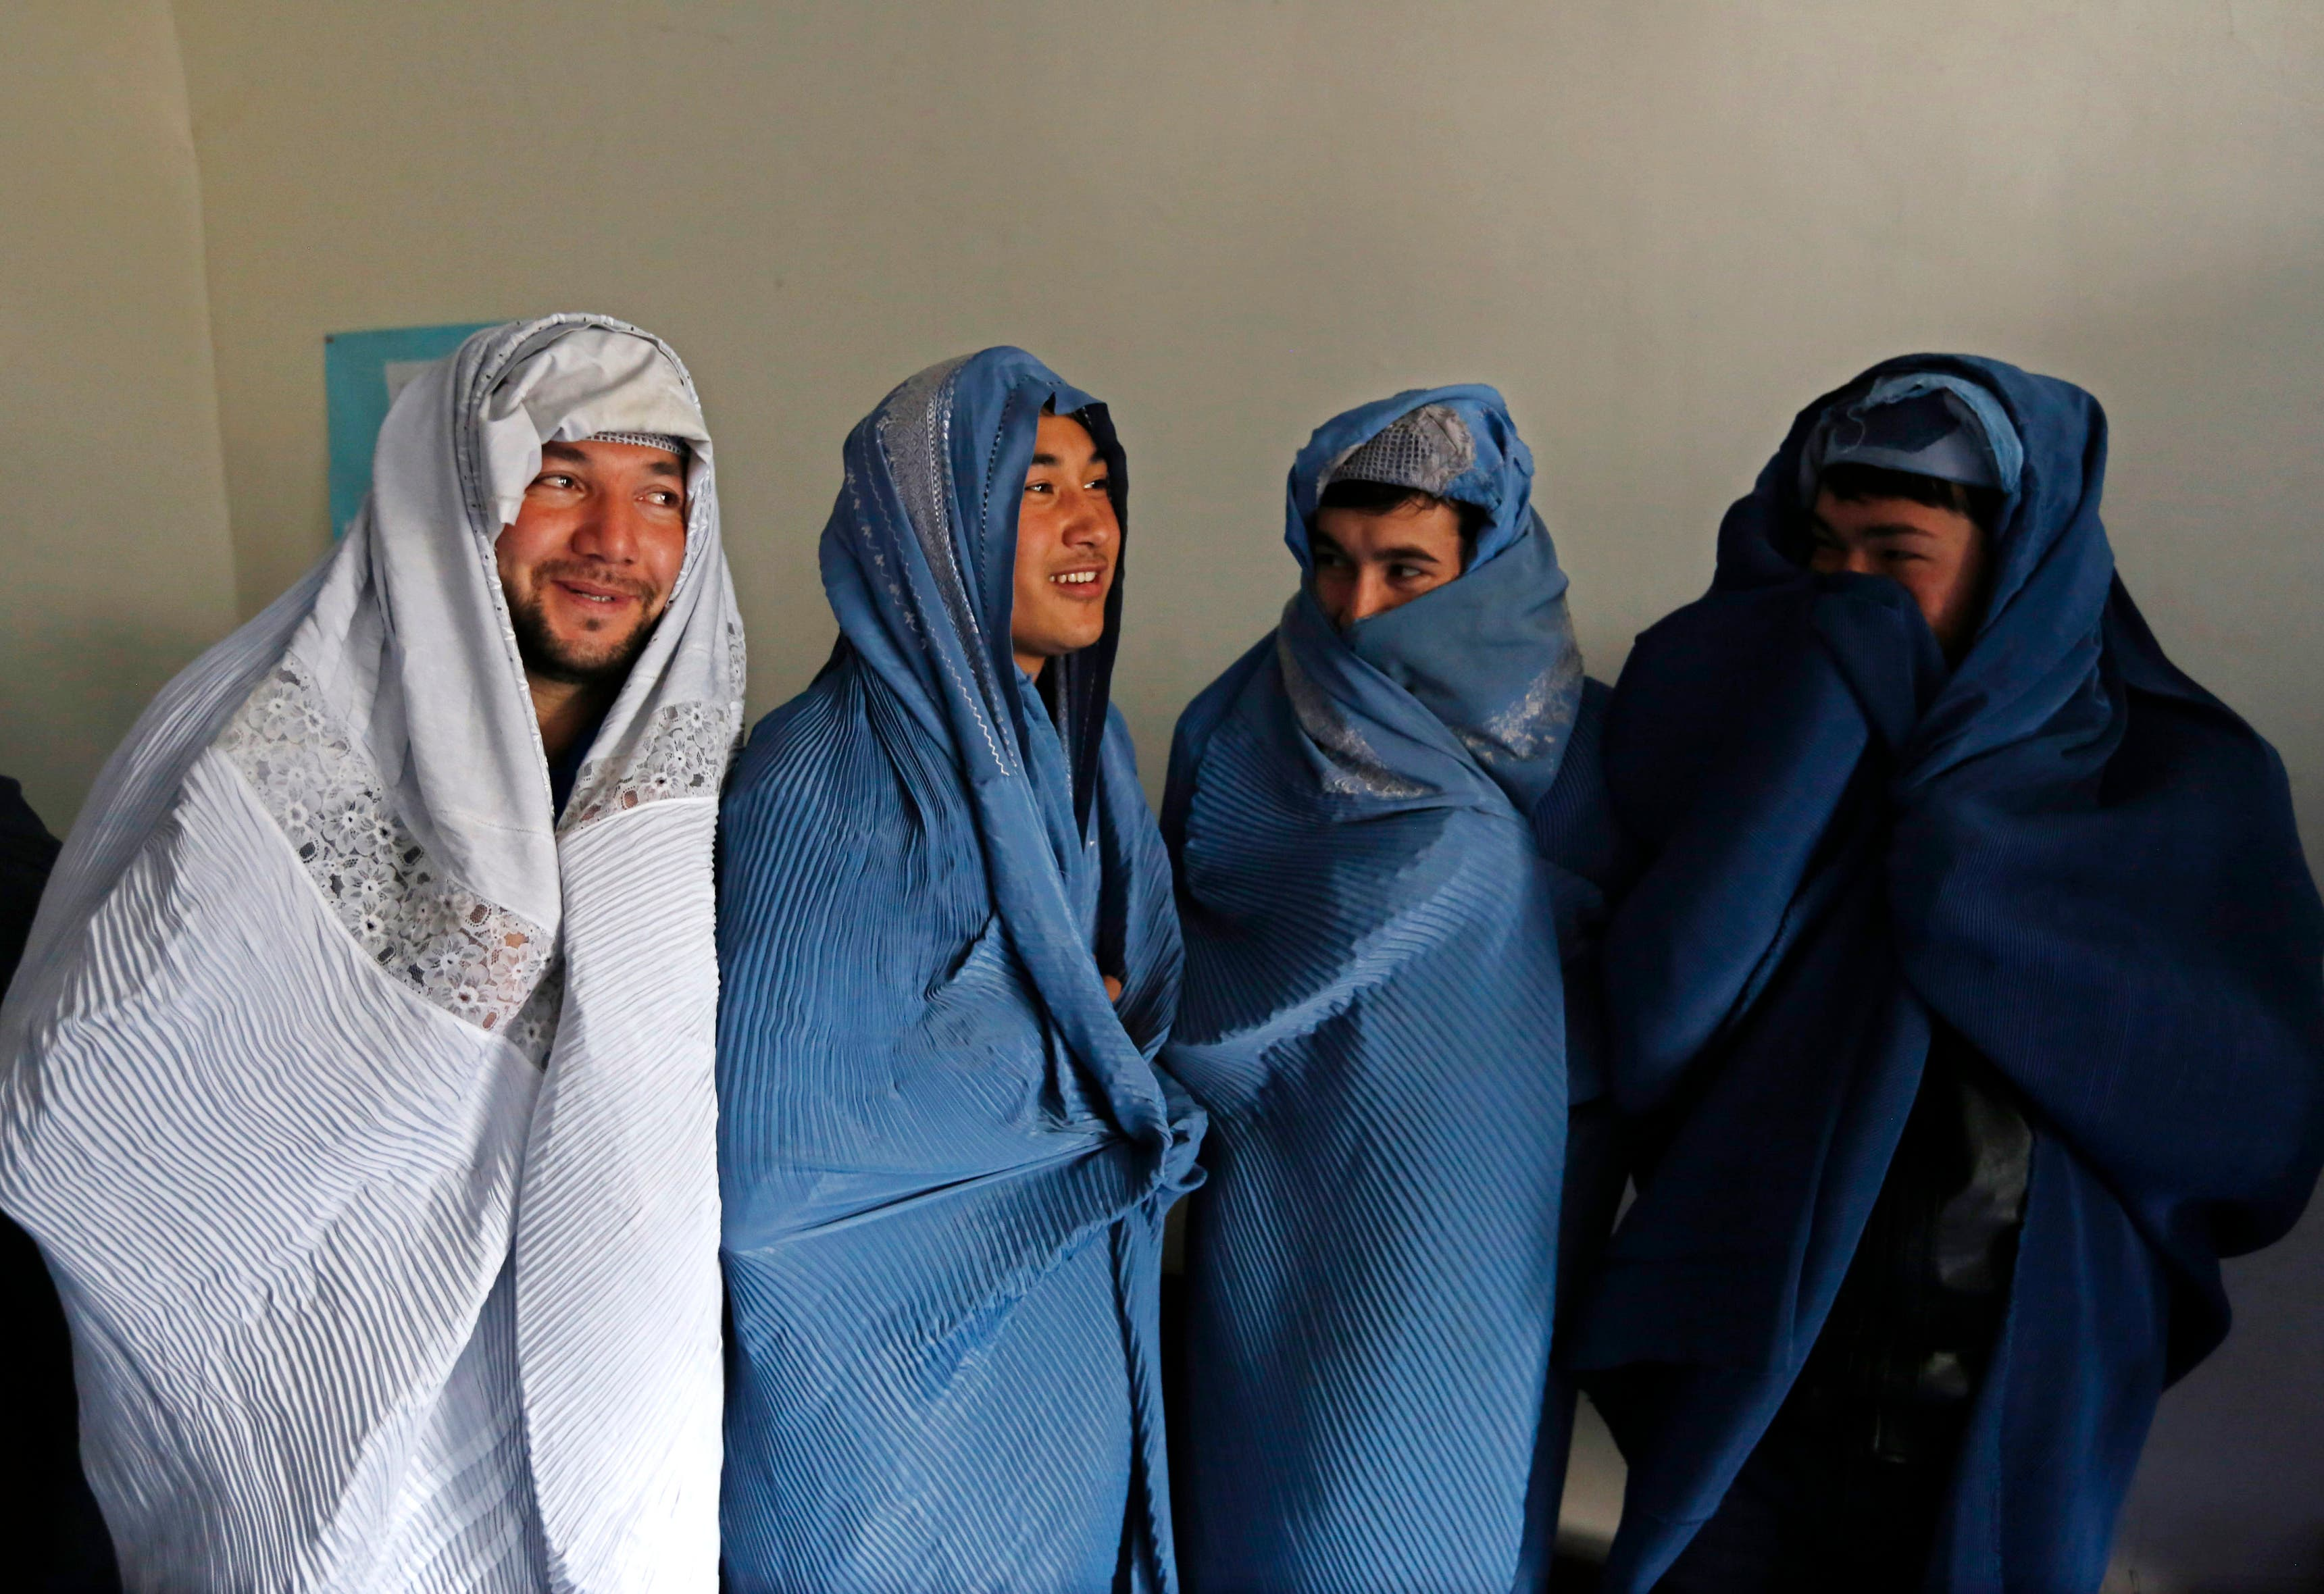 Men don burqas for women's rights